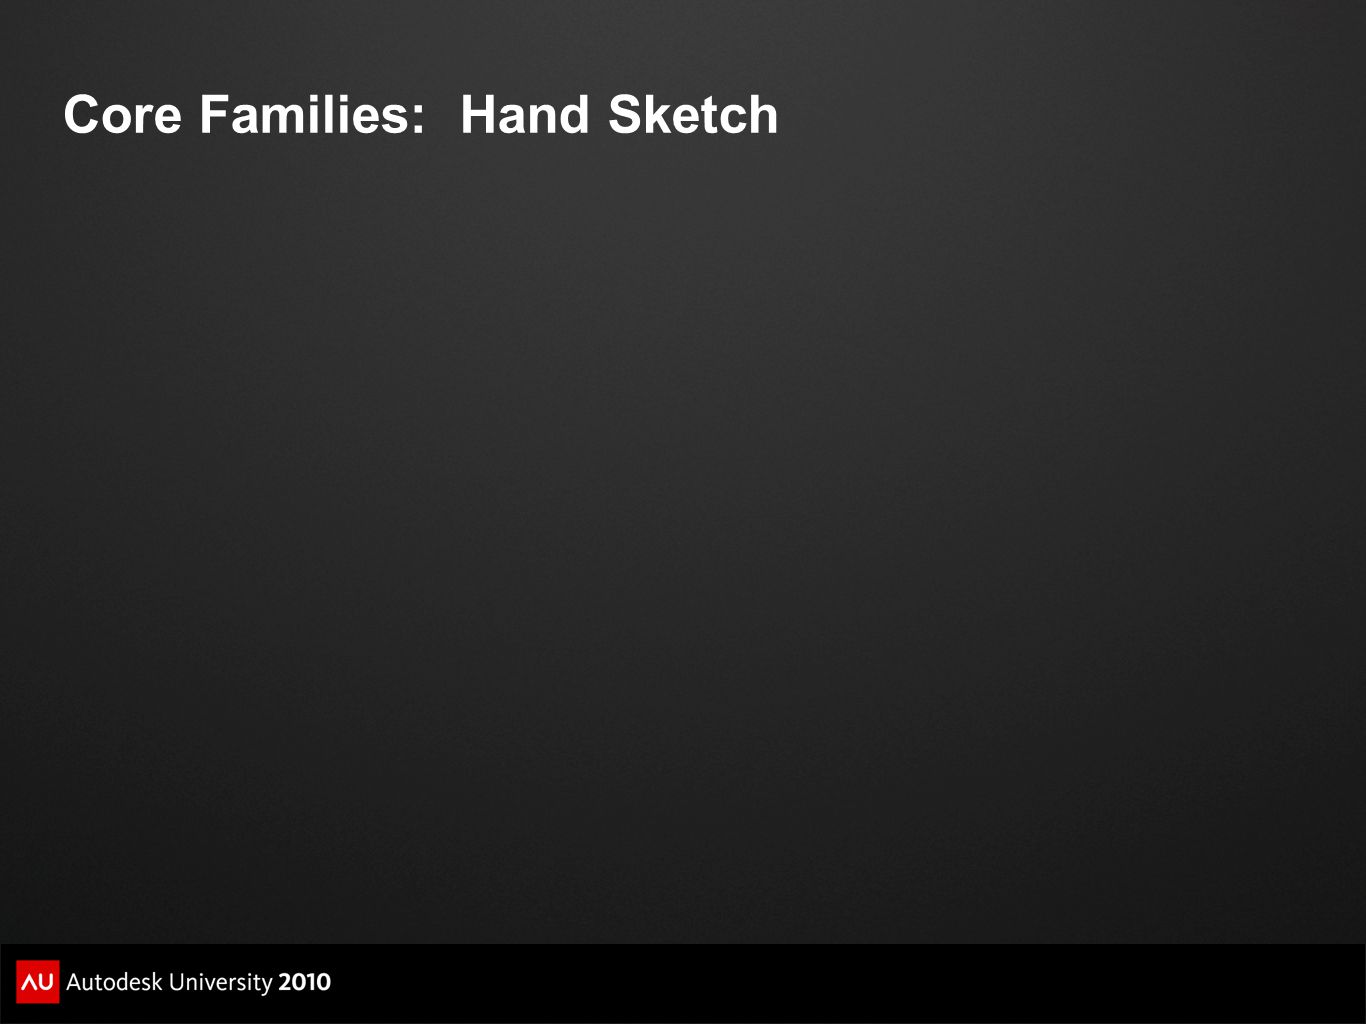 Core Families: Hand Sketch